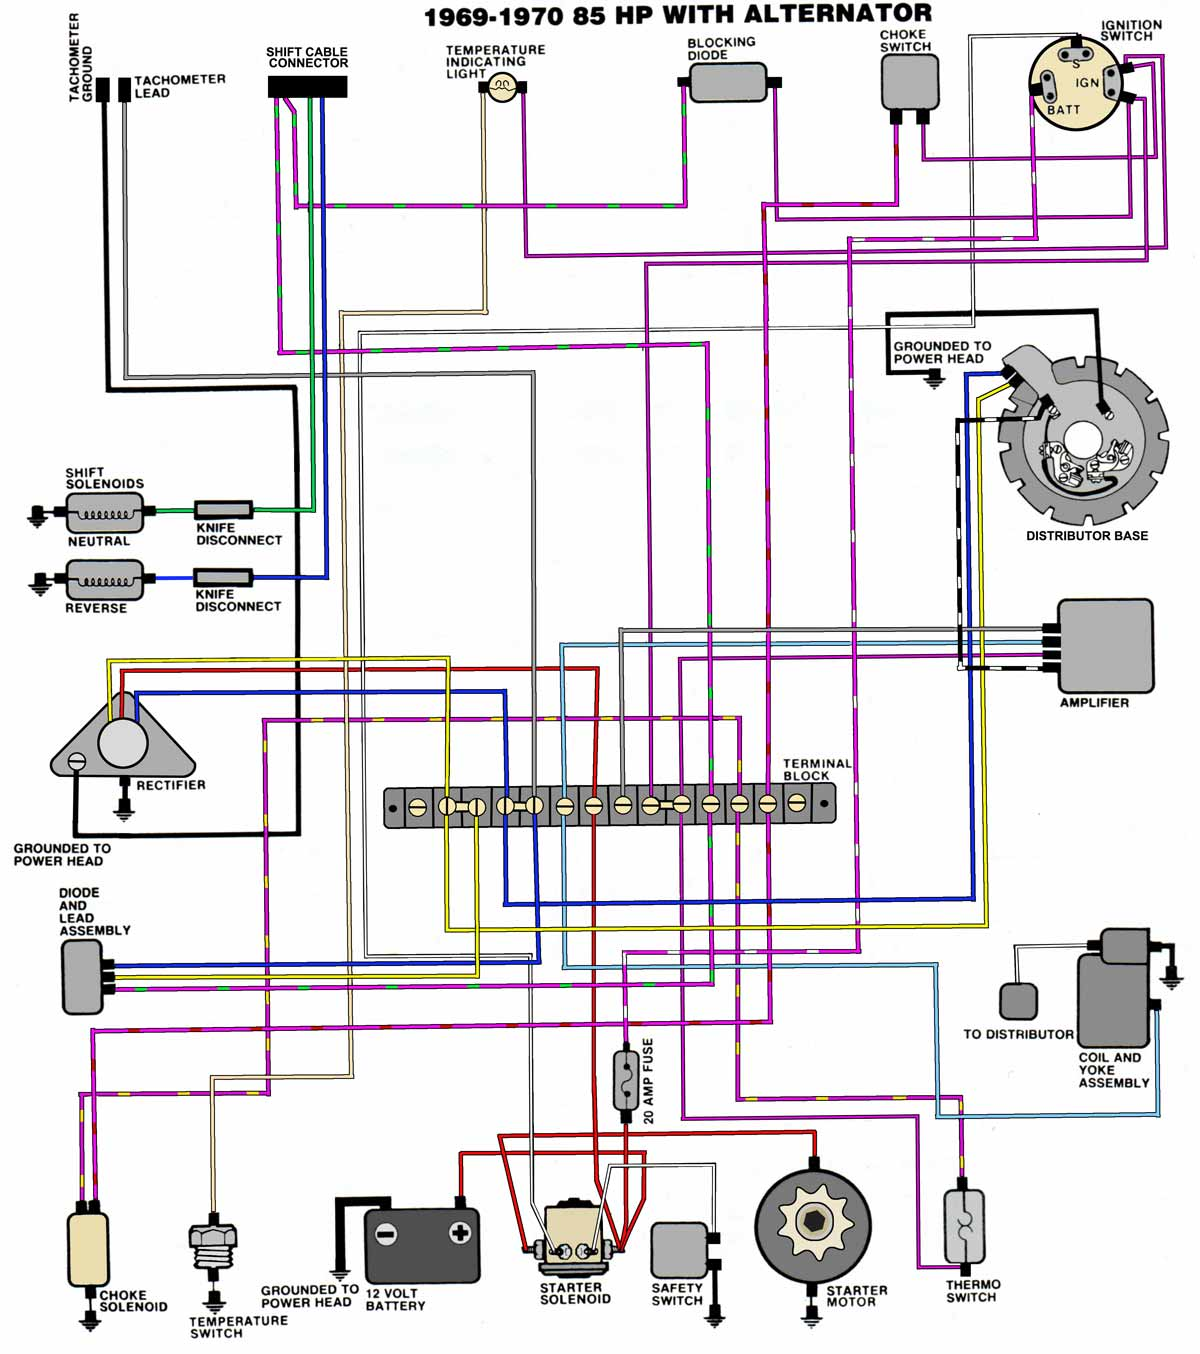 Omc Boat Wiring Diagram Free Picture Schematic | Manual e-books  Glastron Wiring Diagram on glastron accessories, port side of boat diagram, glastron parts, mercruiser 4.3 engine diagram, volvo penta sx outdrive diagram,